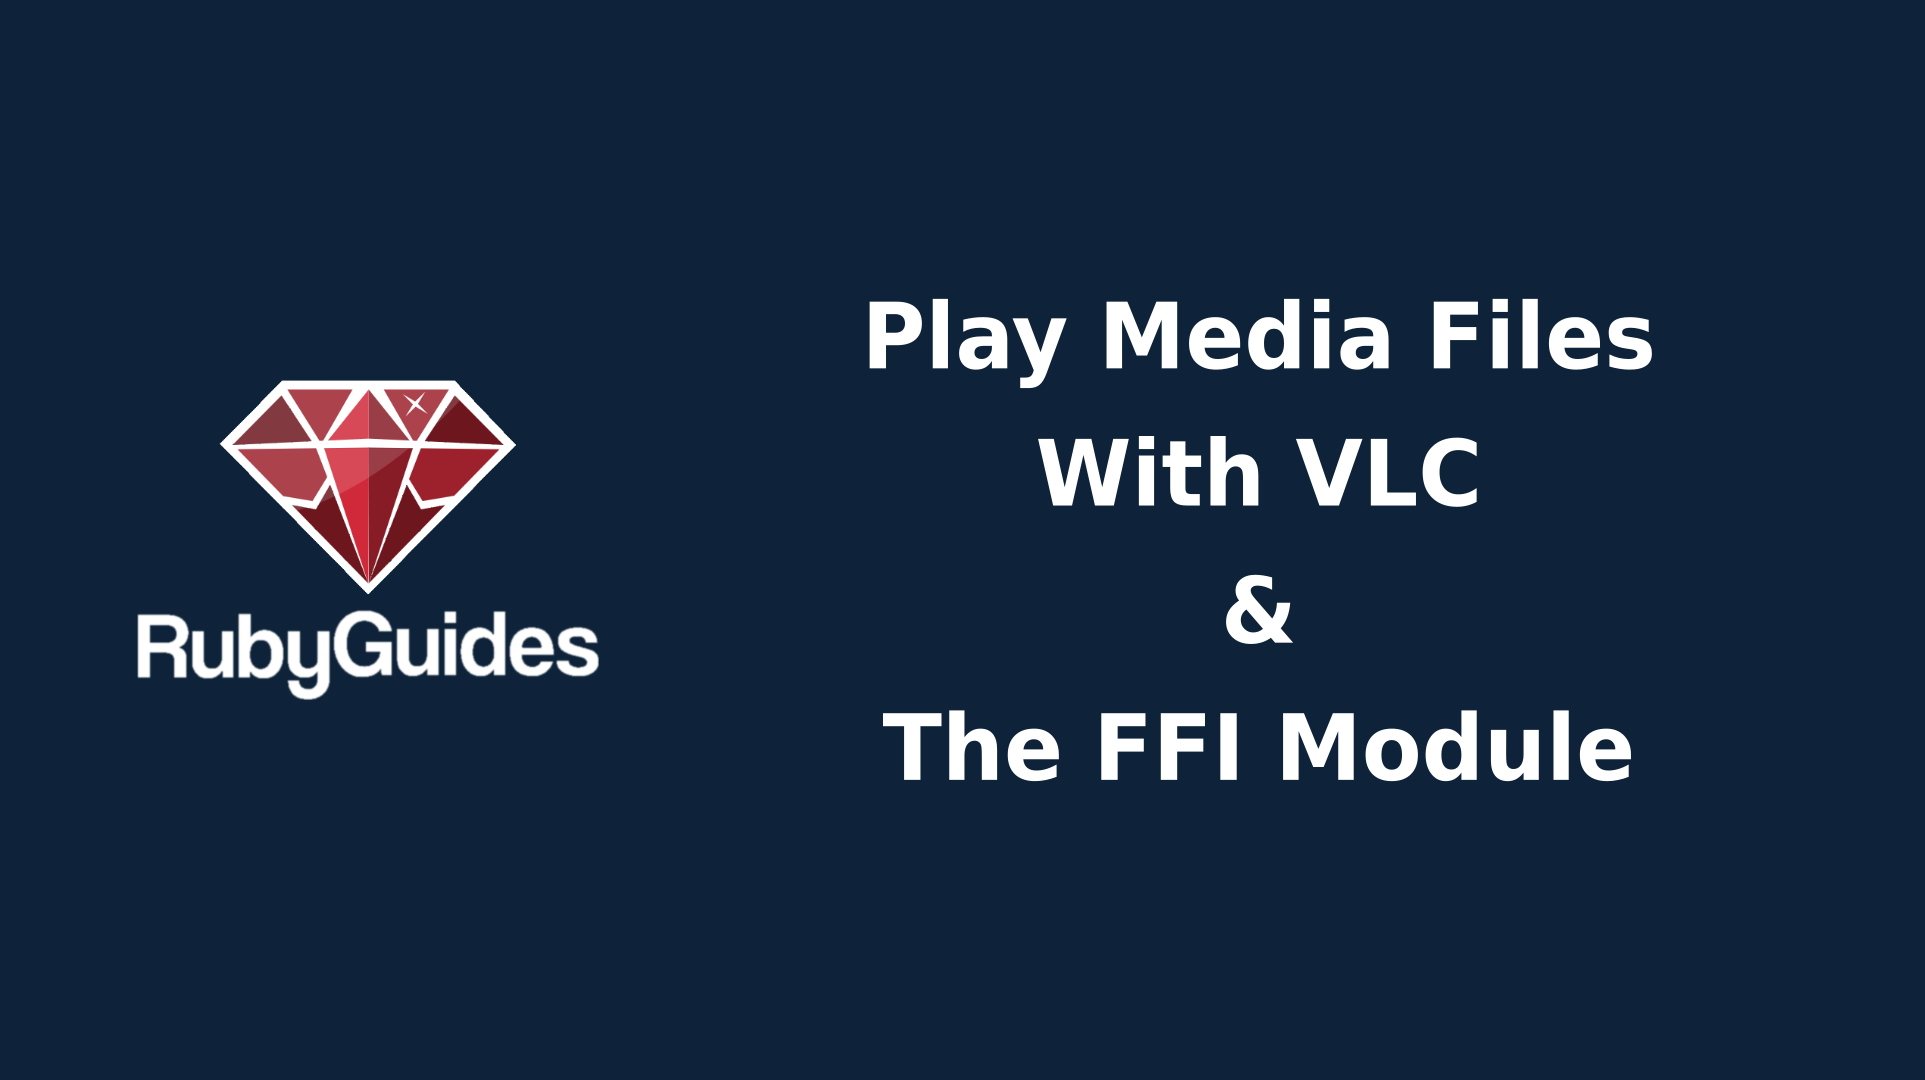 How to Play MP3 Files With Ruby, VLC The FFI Module